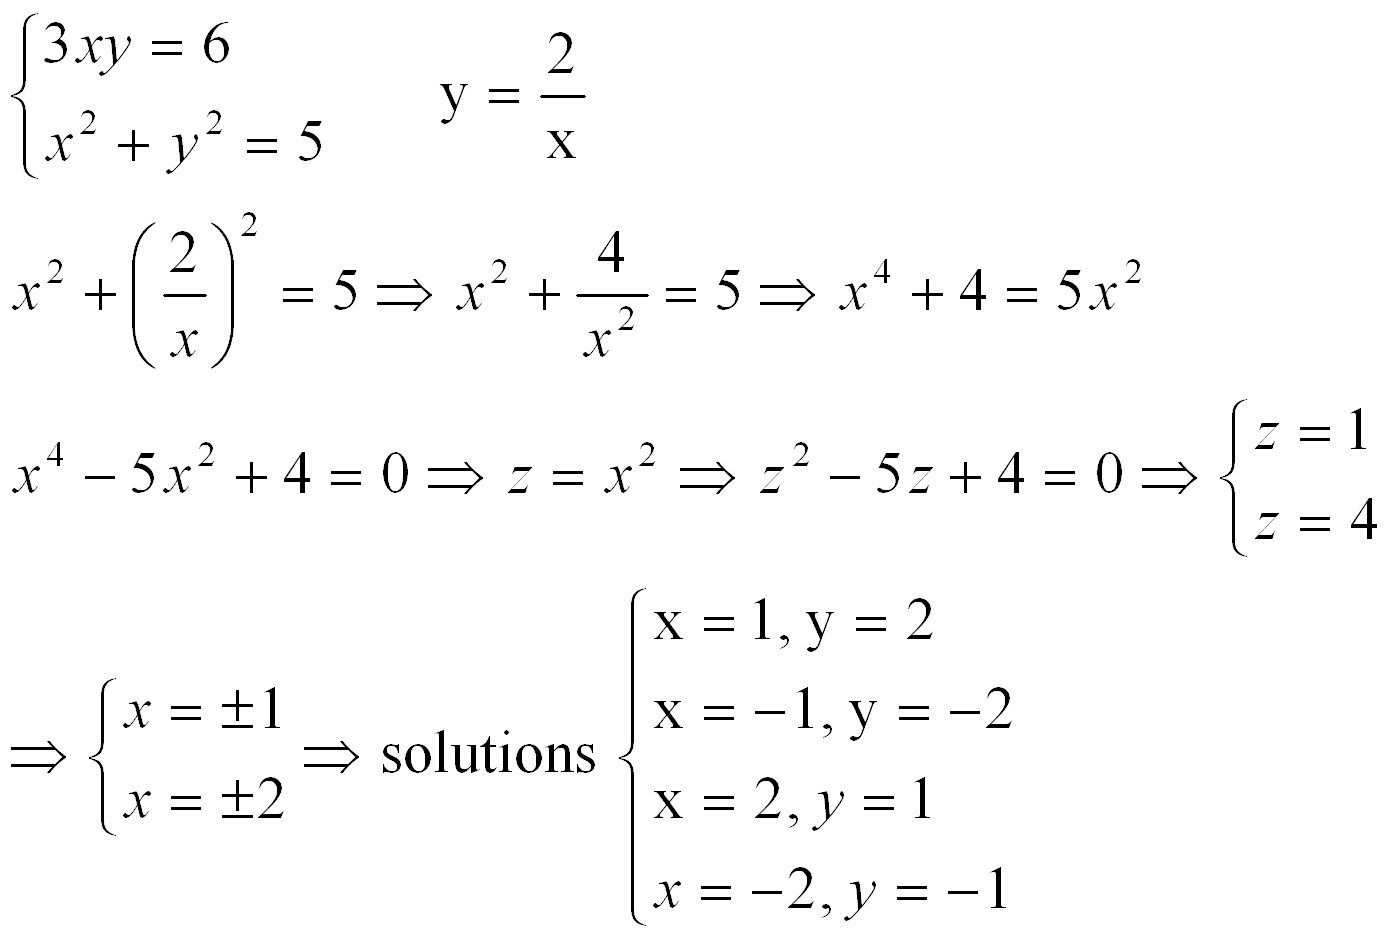 Systems Of Quadratic Equations